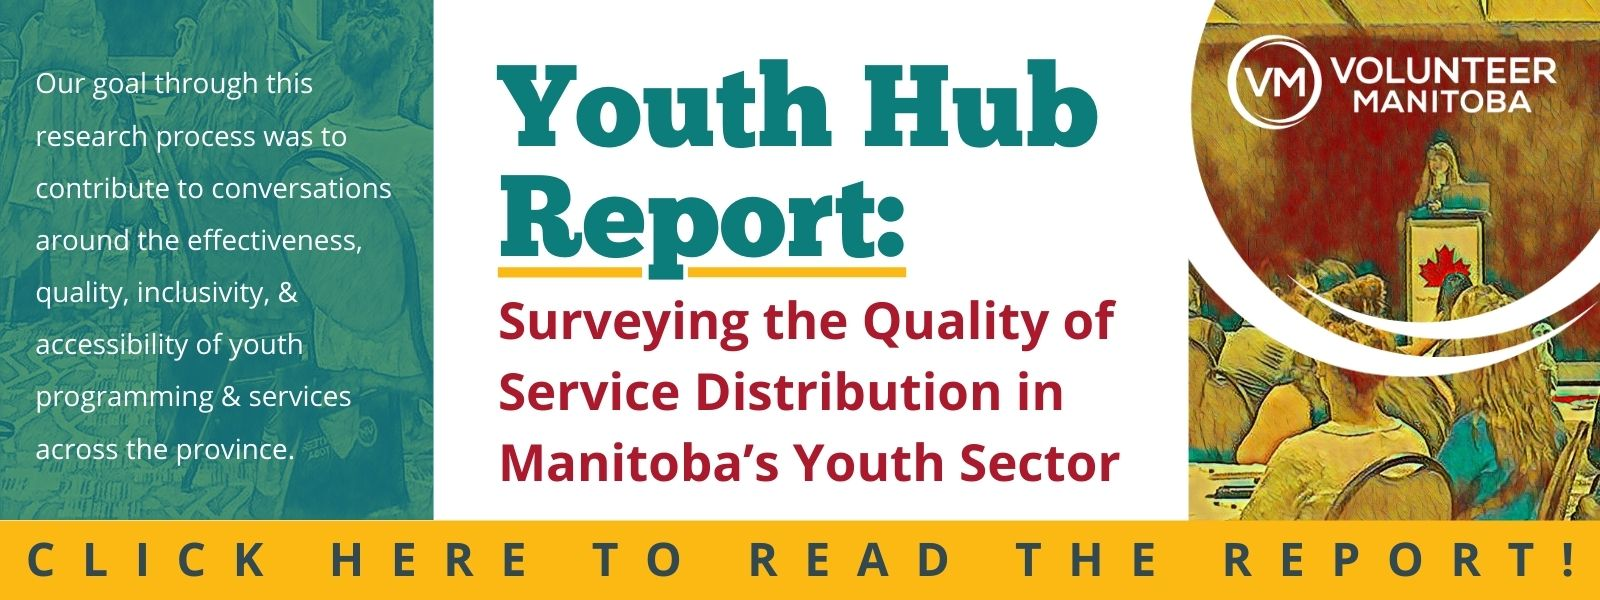 VM Youth Hub Report